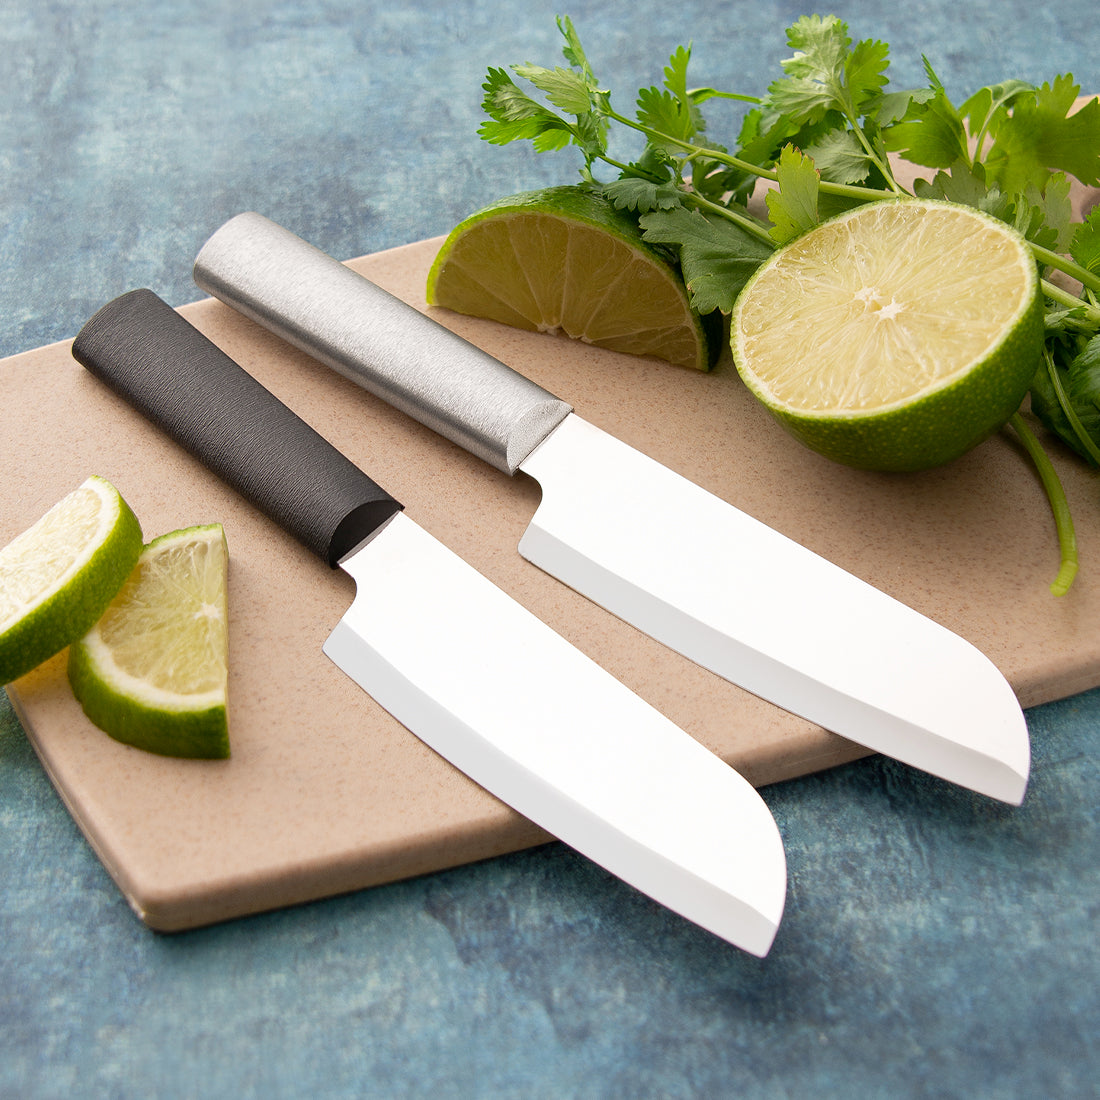 Rada Cutlery Cook's Utility knife with silver and black handle options.